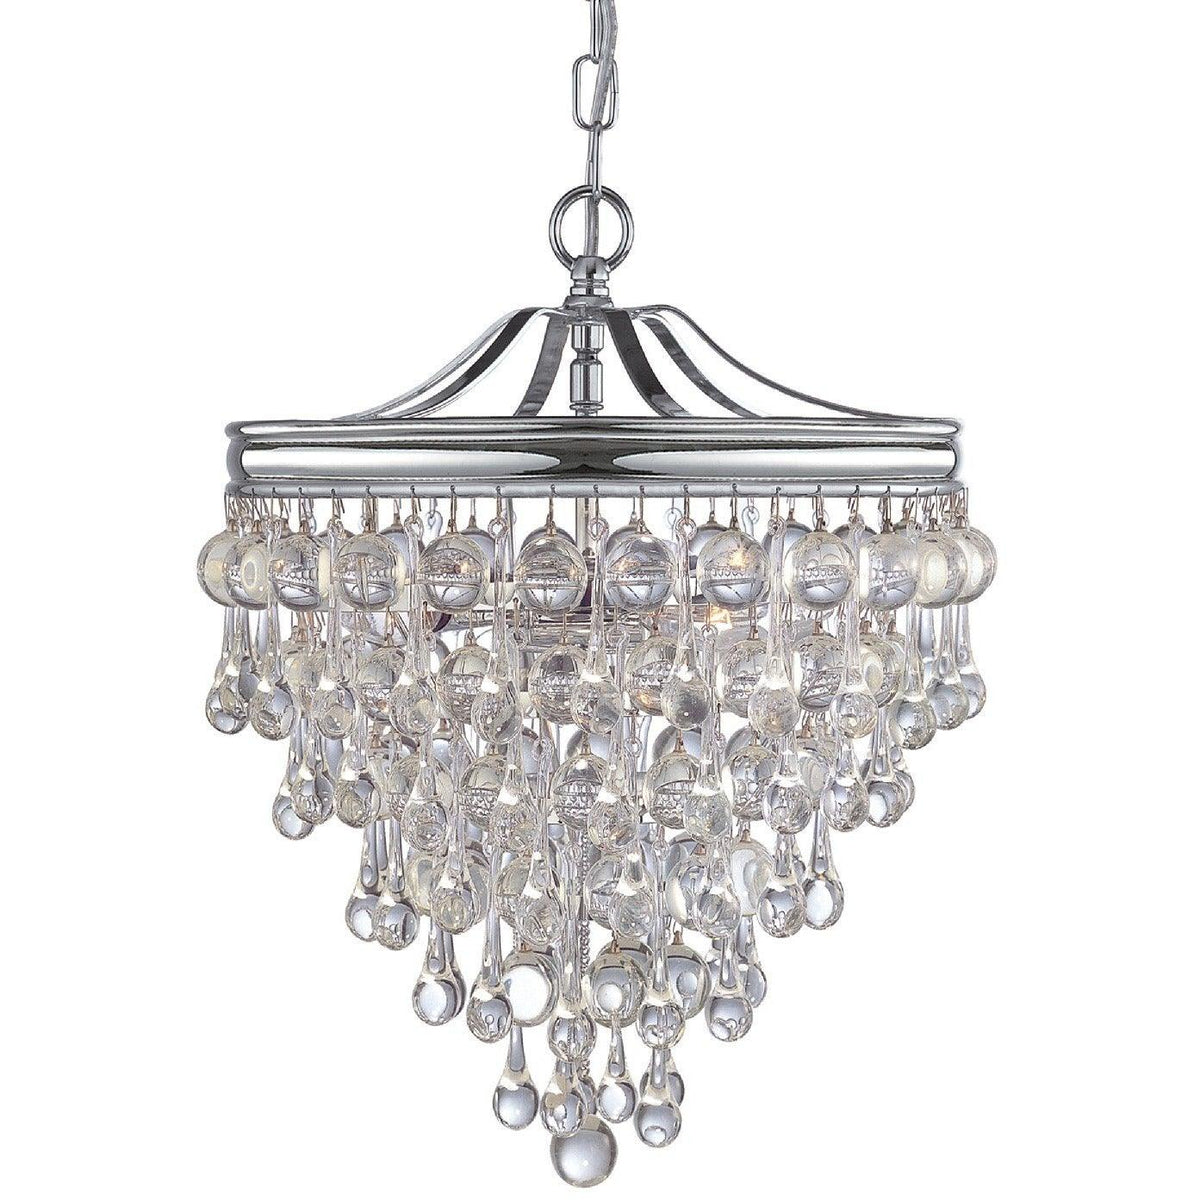 Crystorama - 130-CH - Three Light Mini Chandelier - Calypso - Polished Chrome